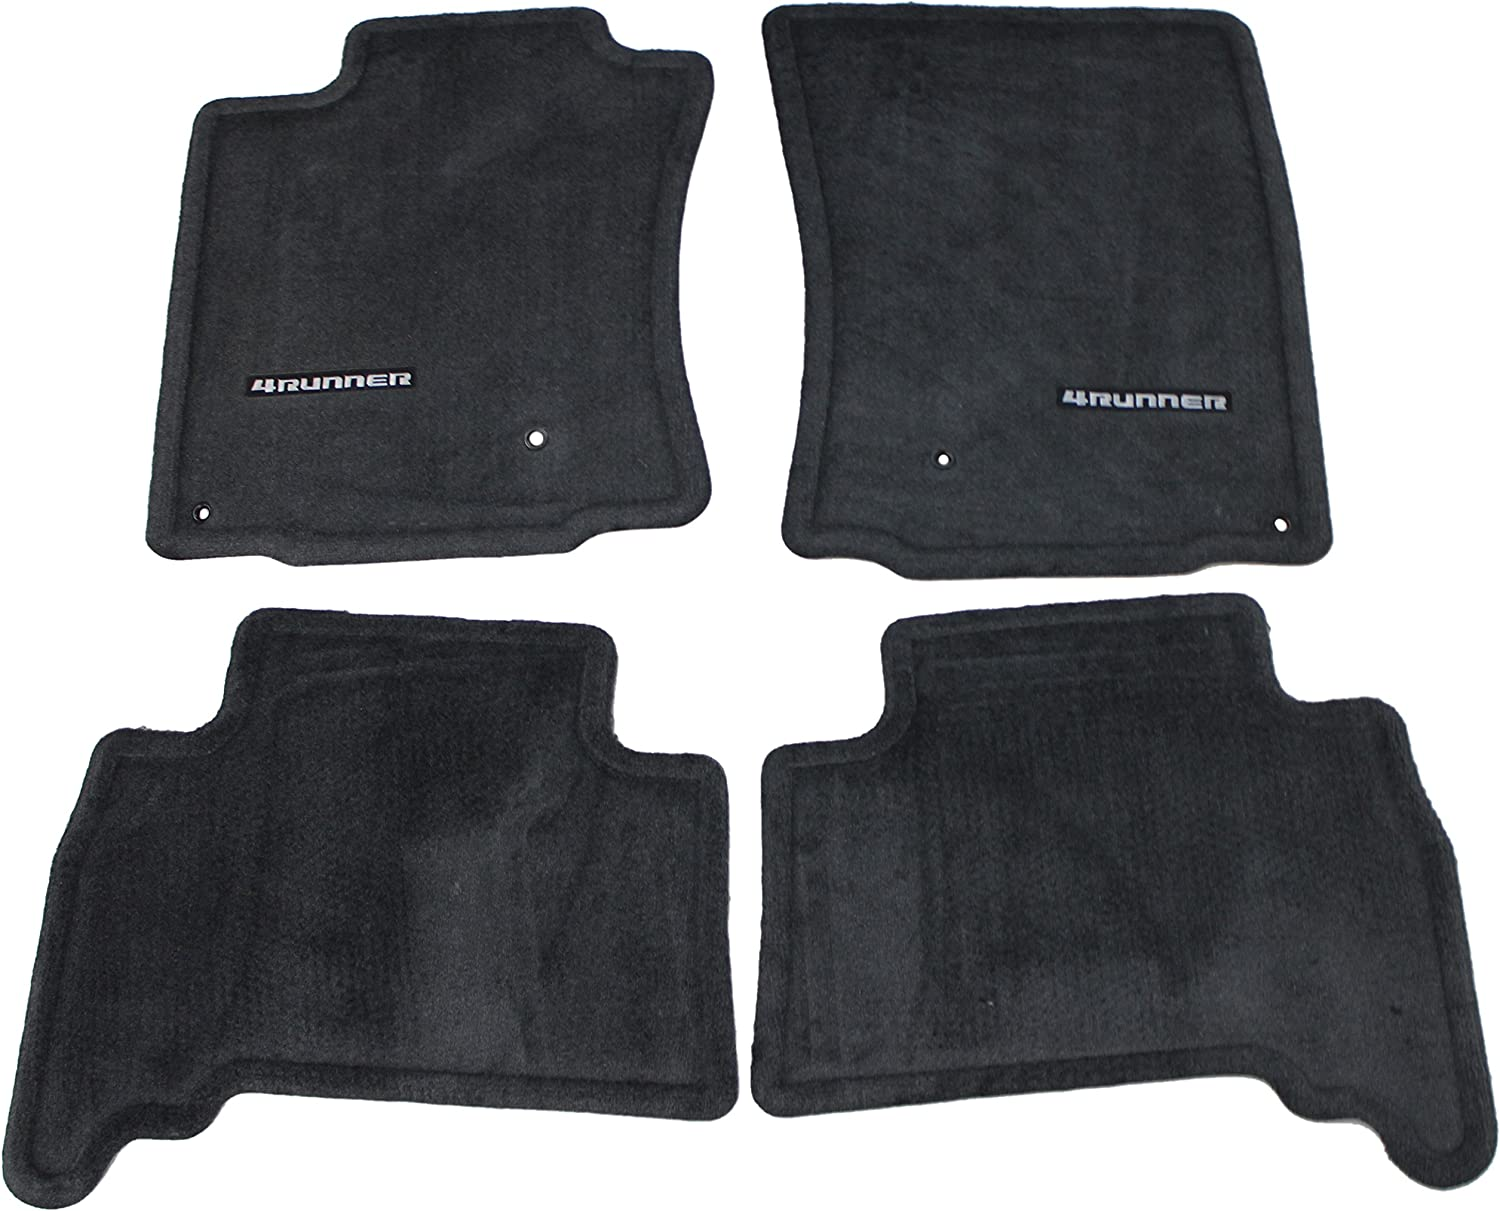 Toyota Genuine Accessories PT208-89114-20 Carpet Floor Mat for Select 4Runner Models